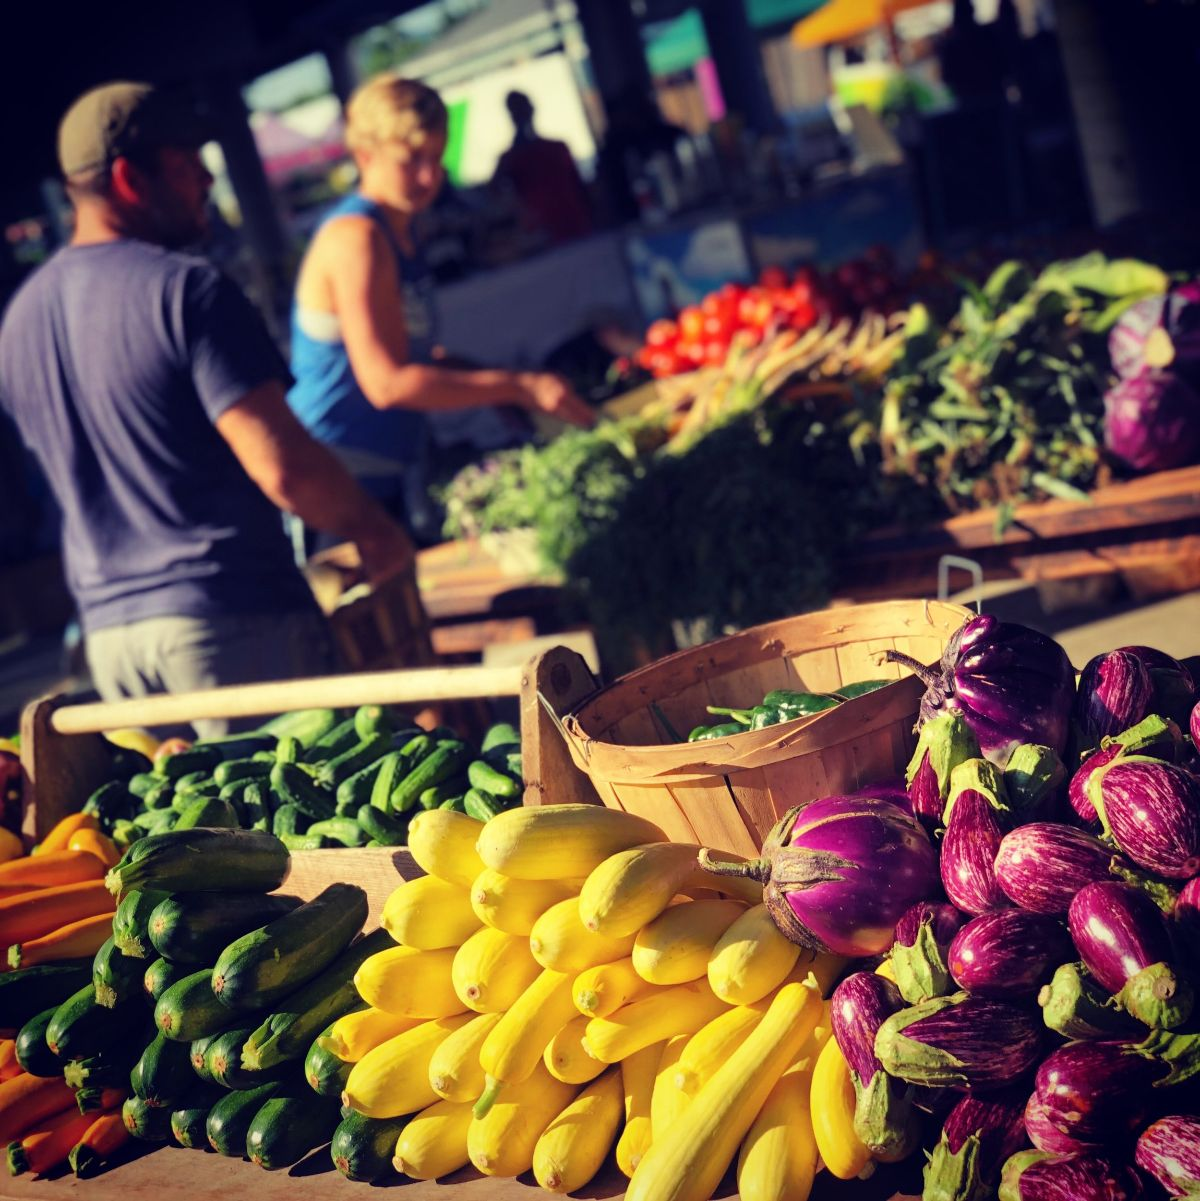 The Nashville Farmers Market is reopening the sheds on Friday